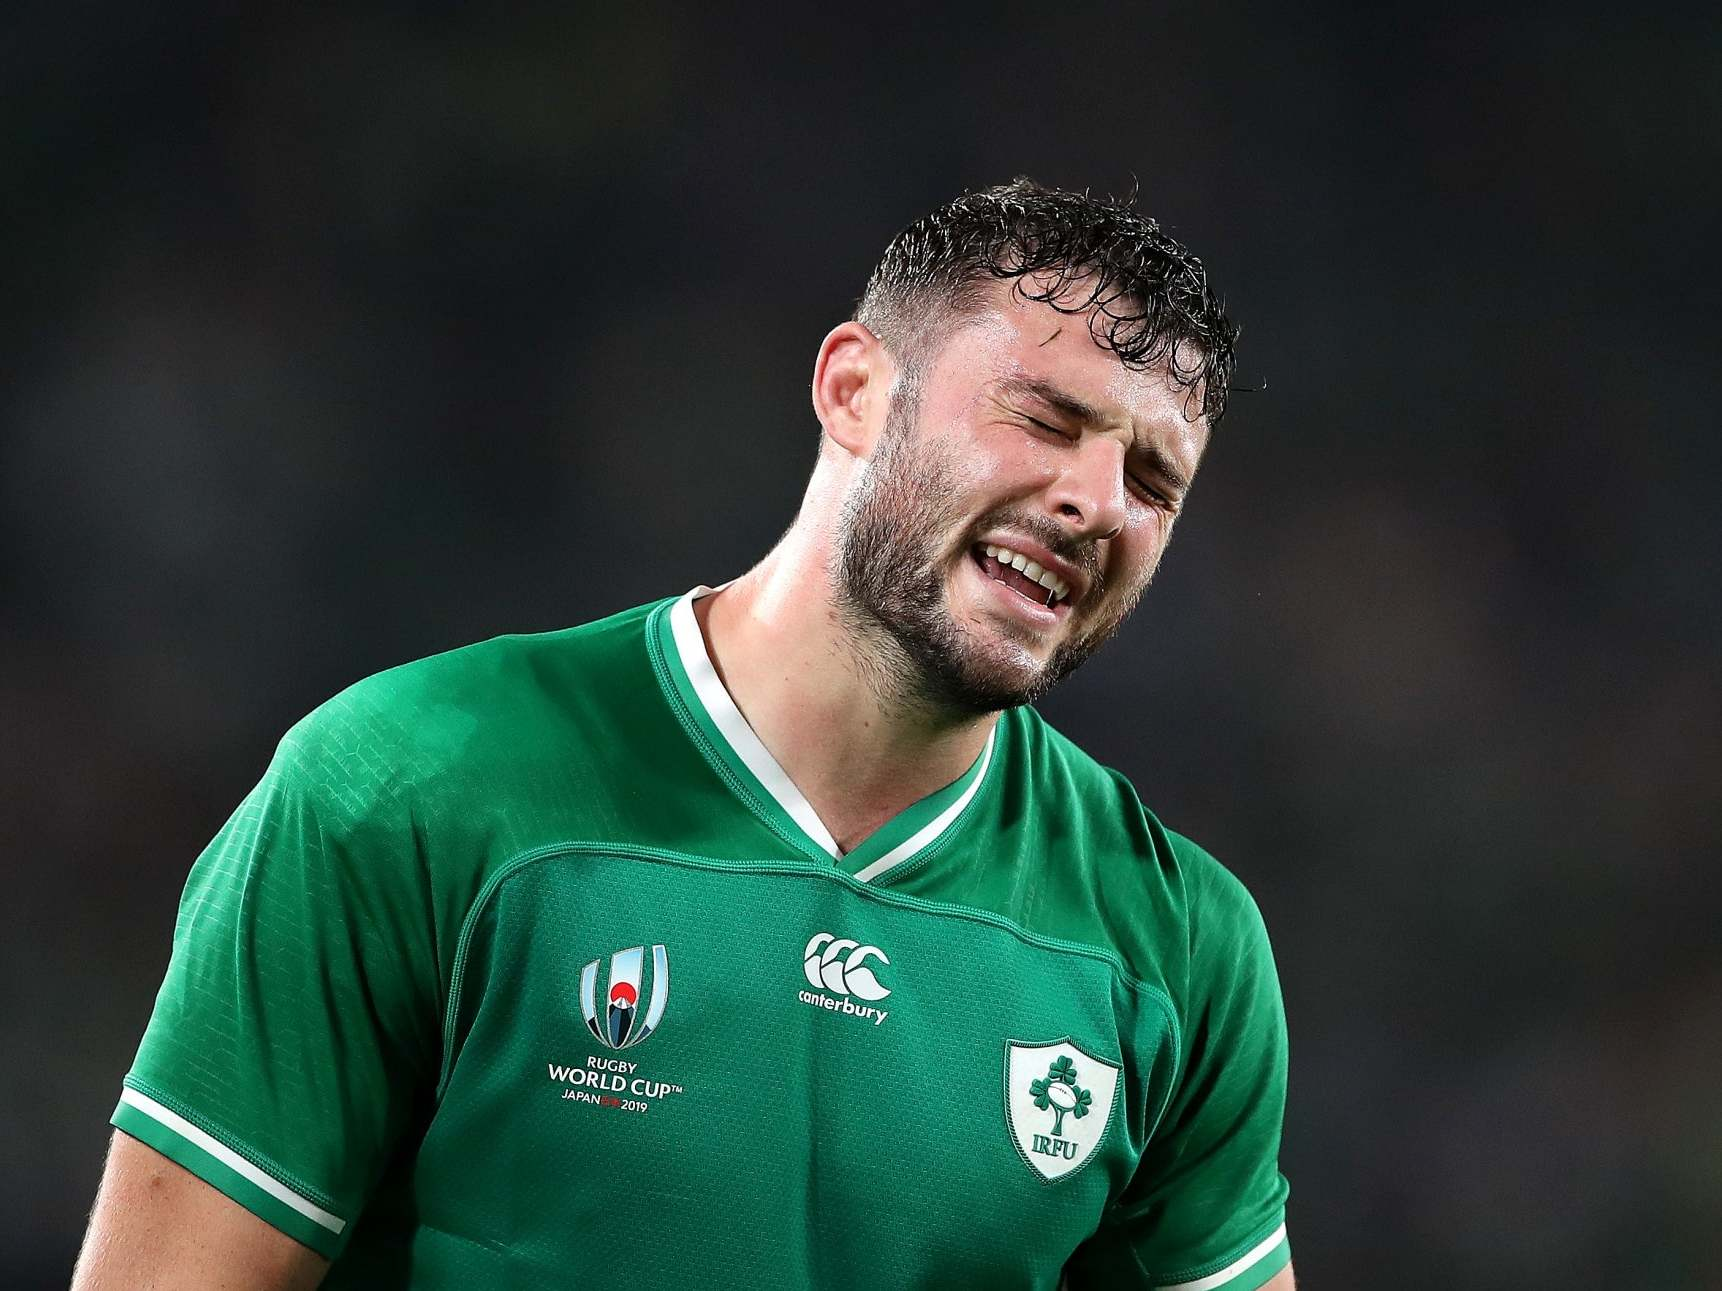 New Zealand vs Ireland - Rugby World Cup quarter-final: All Blacks hand Irish brutal lesson - 5 things we learned